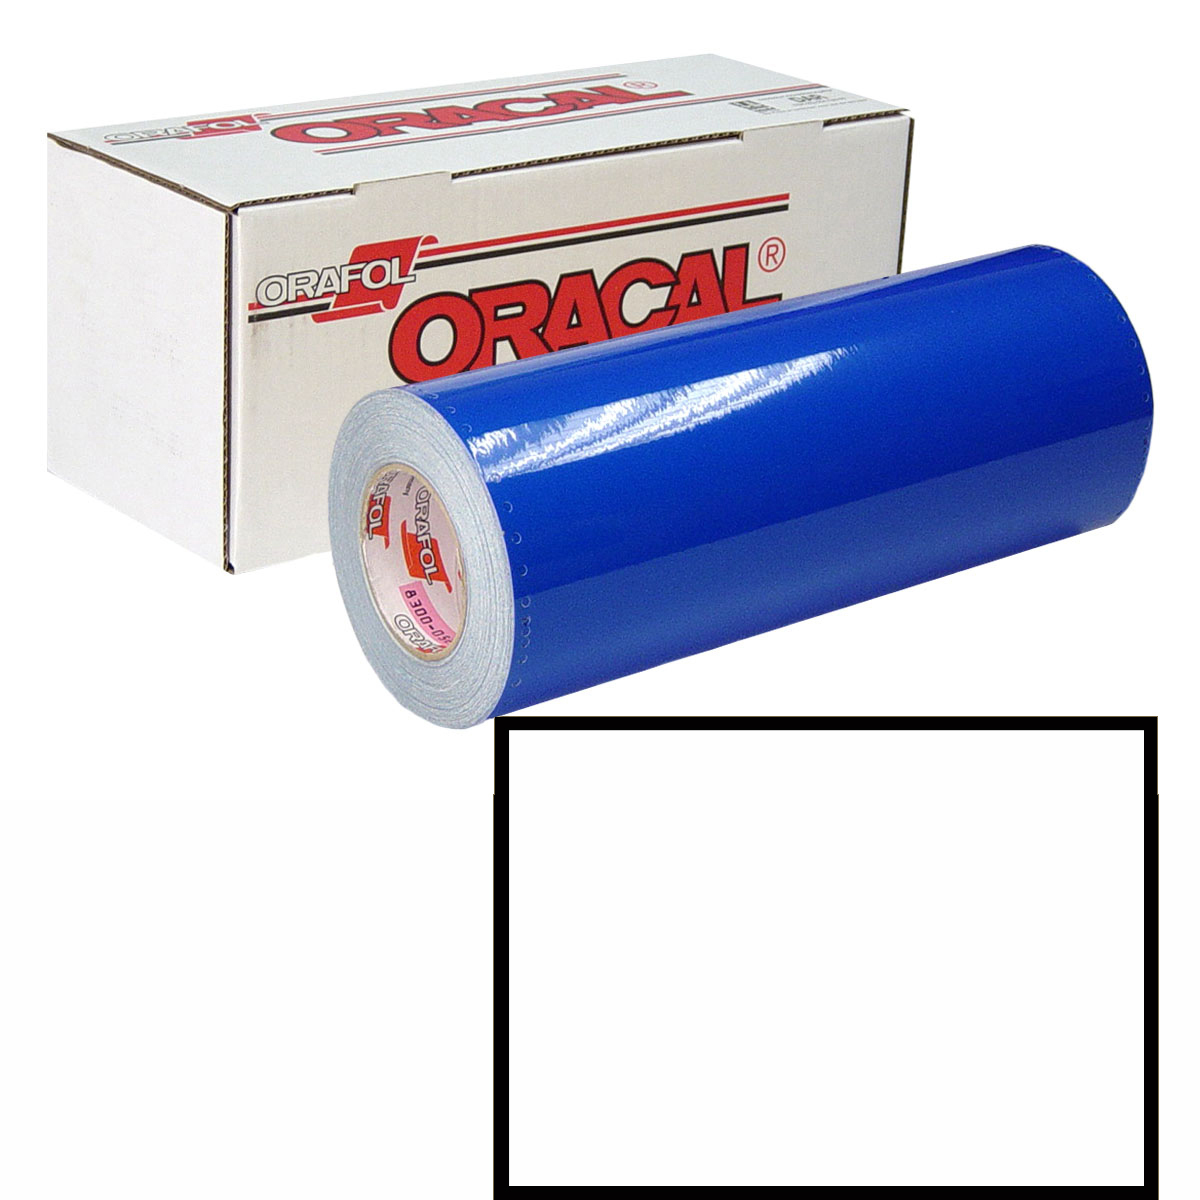 ORACAL 631 Unp 30in X 10yd 000 Transparent